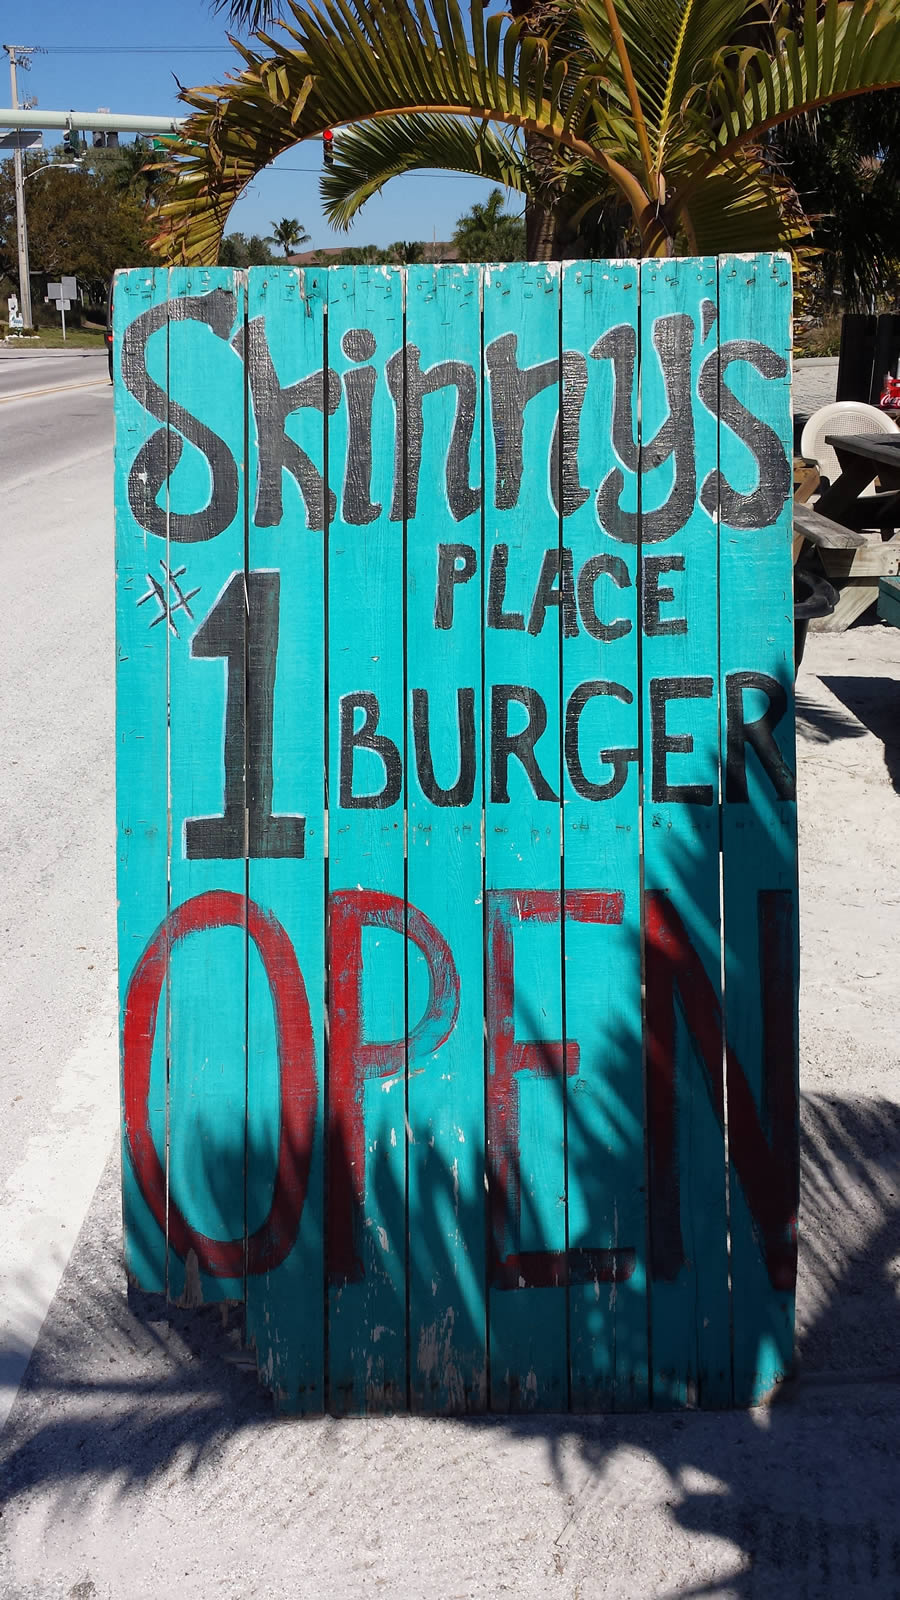 Just Outside Skinny's Place in Anna Maria Island, Florida